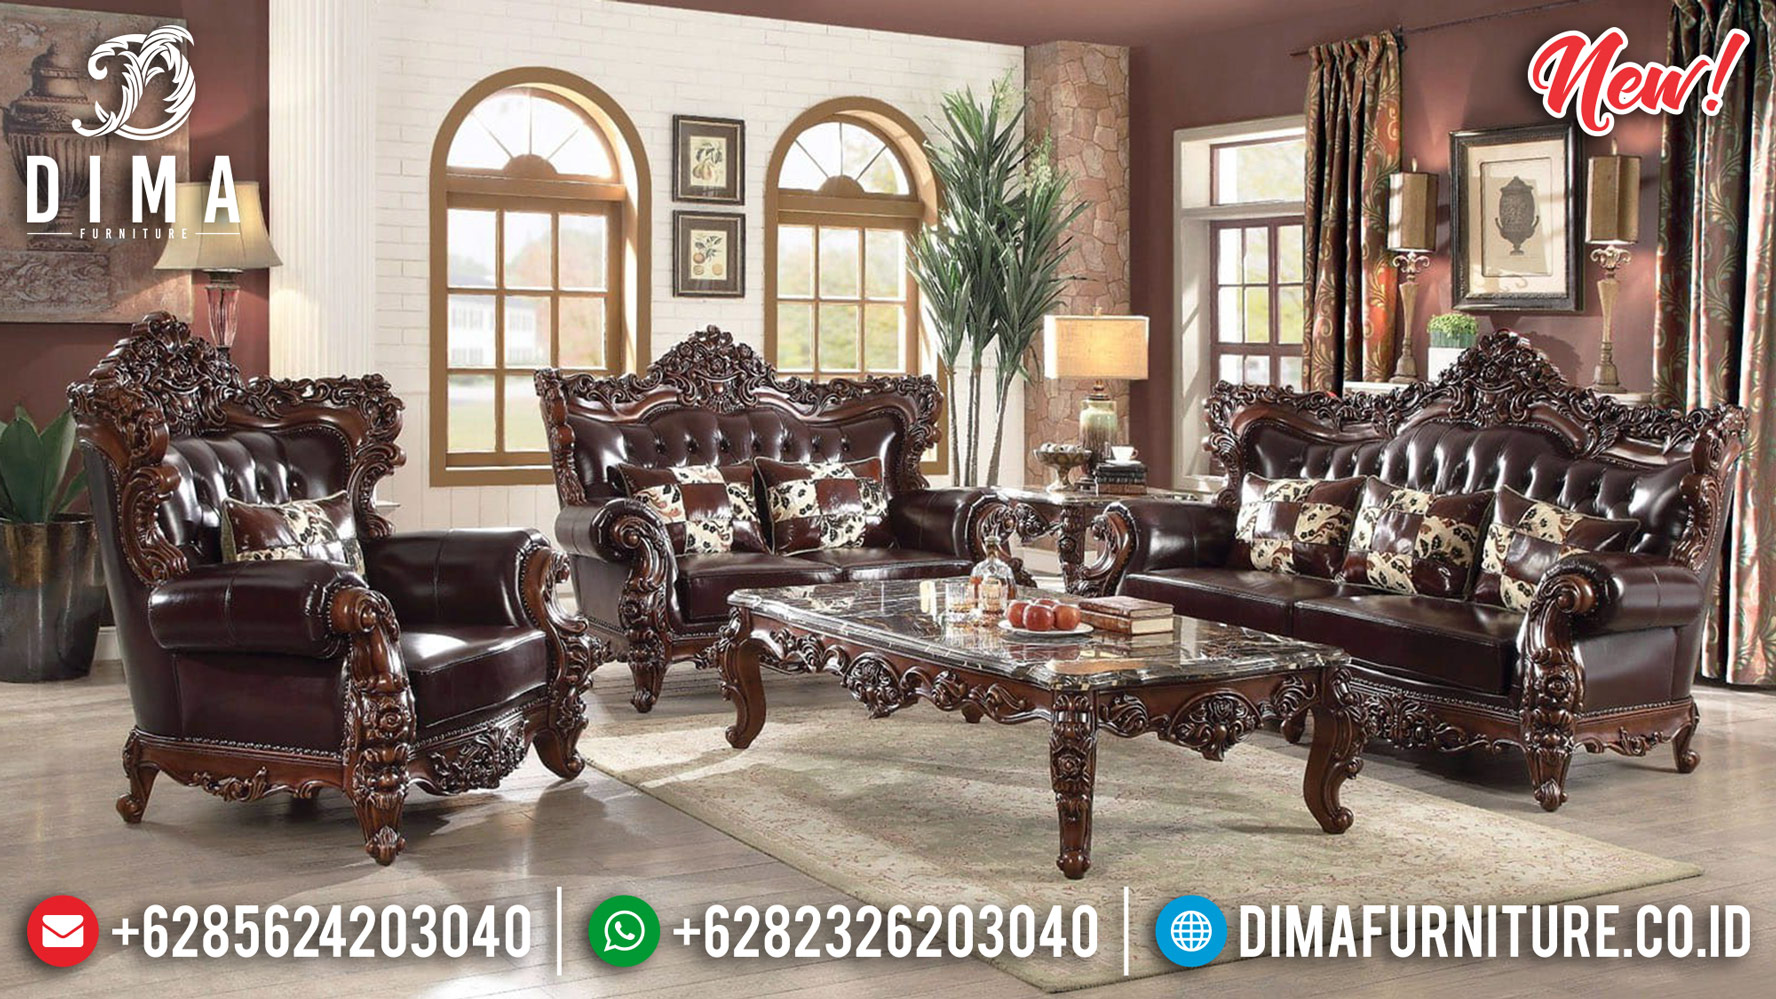 Italian Carving Sofa Tamu Mewah Jepara Luxury Furniture Big Sale TTJ-0804